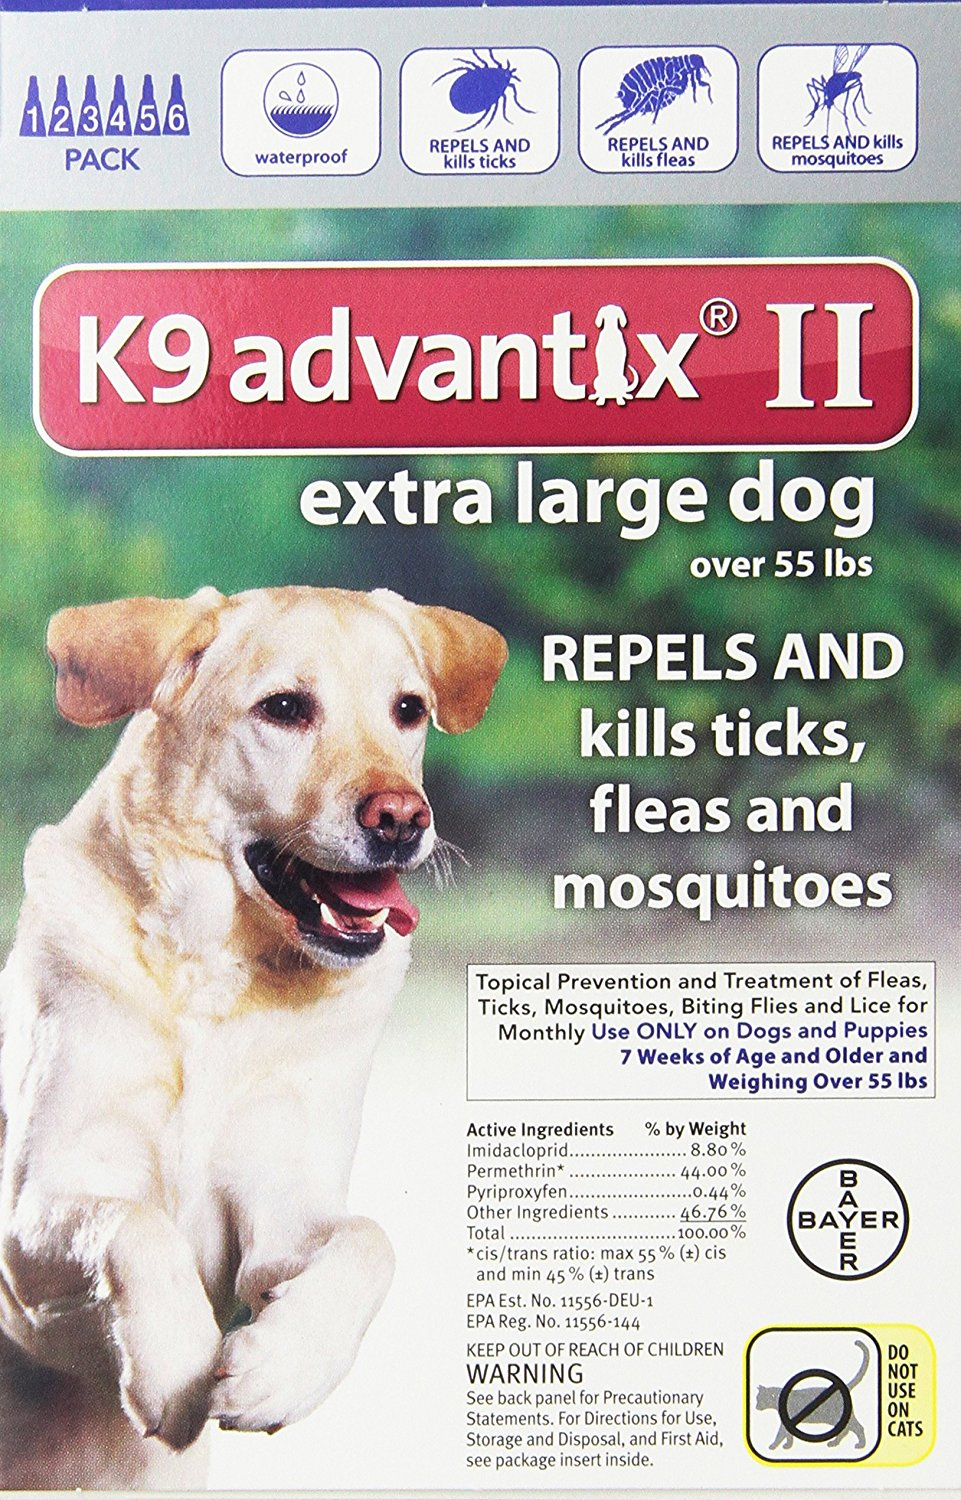 Bayer K9 Advantix II Flea And Tick Control Treatment for Dogs – Available in 5 Sizes & 3 Styles